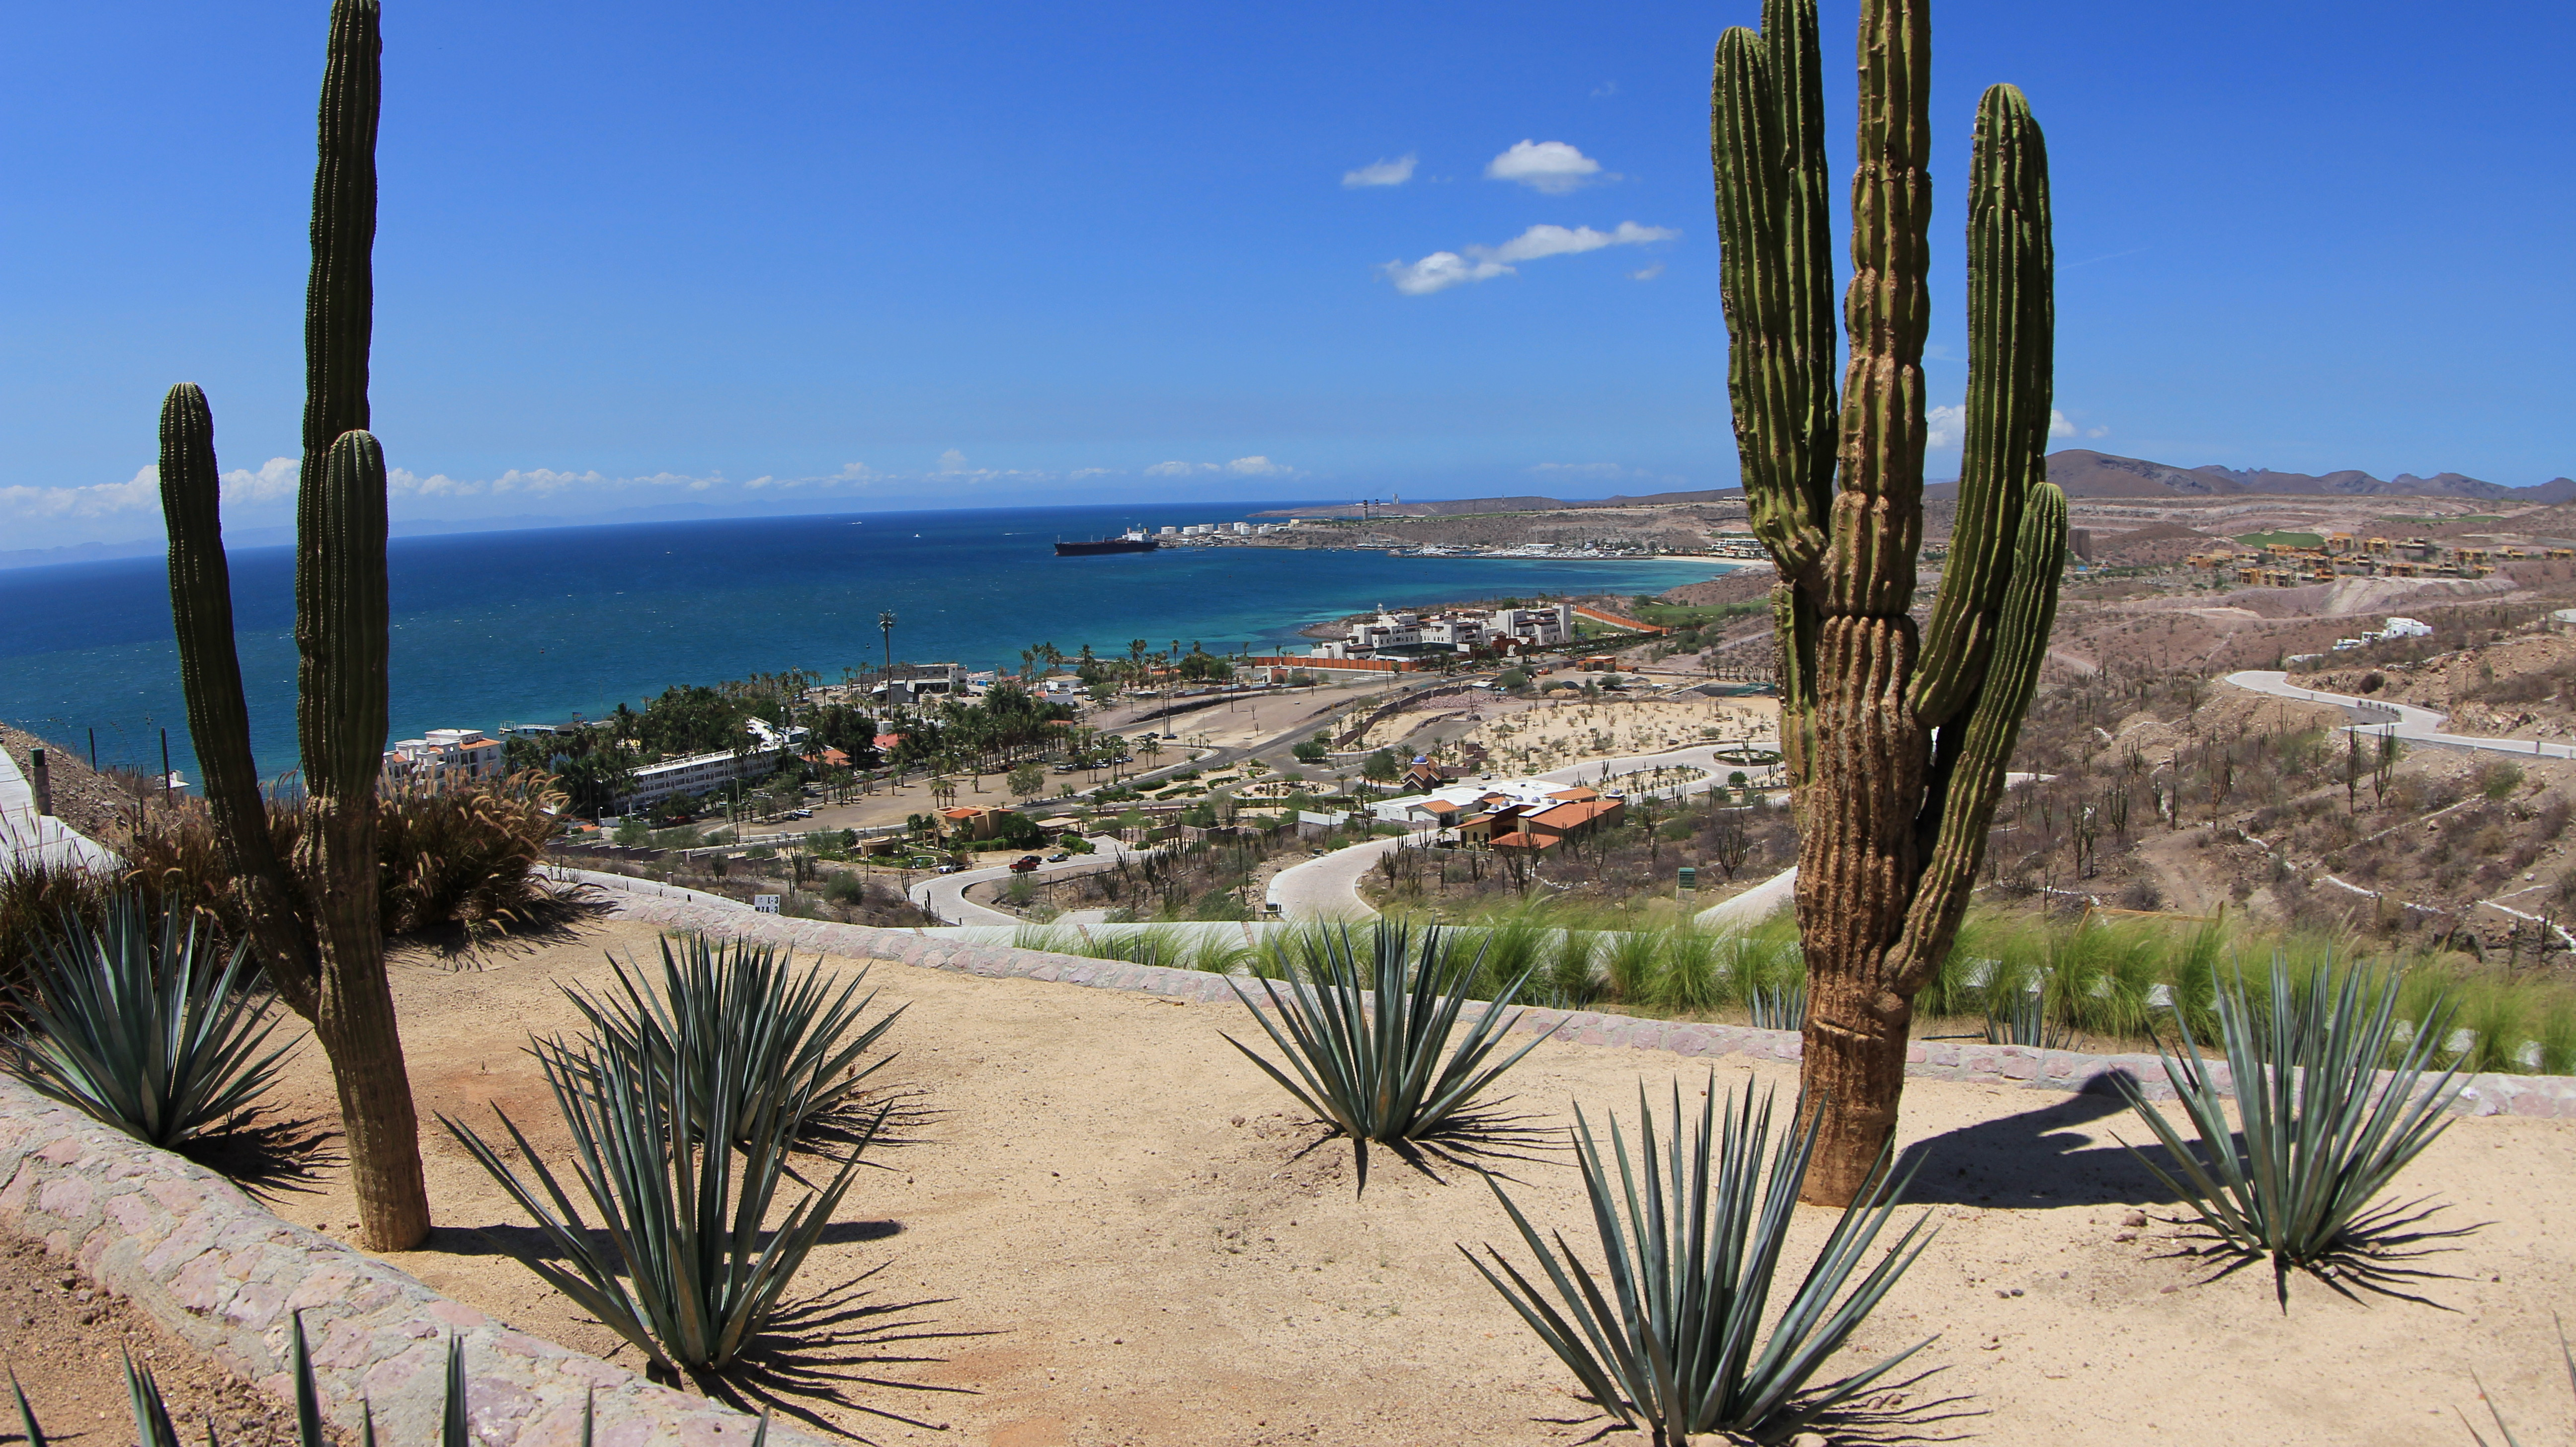 Overlooking Pedregal, La Paz